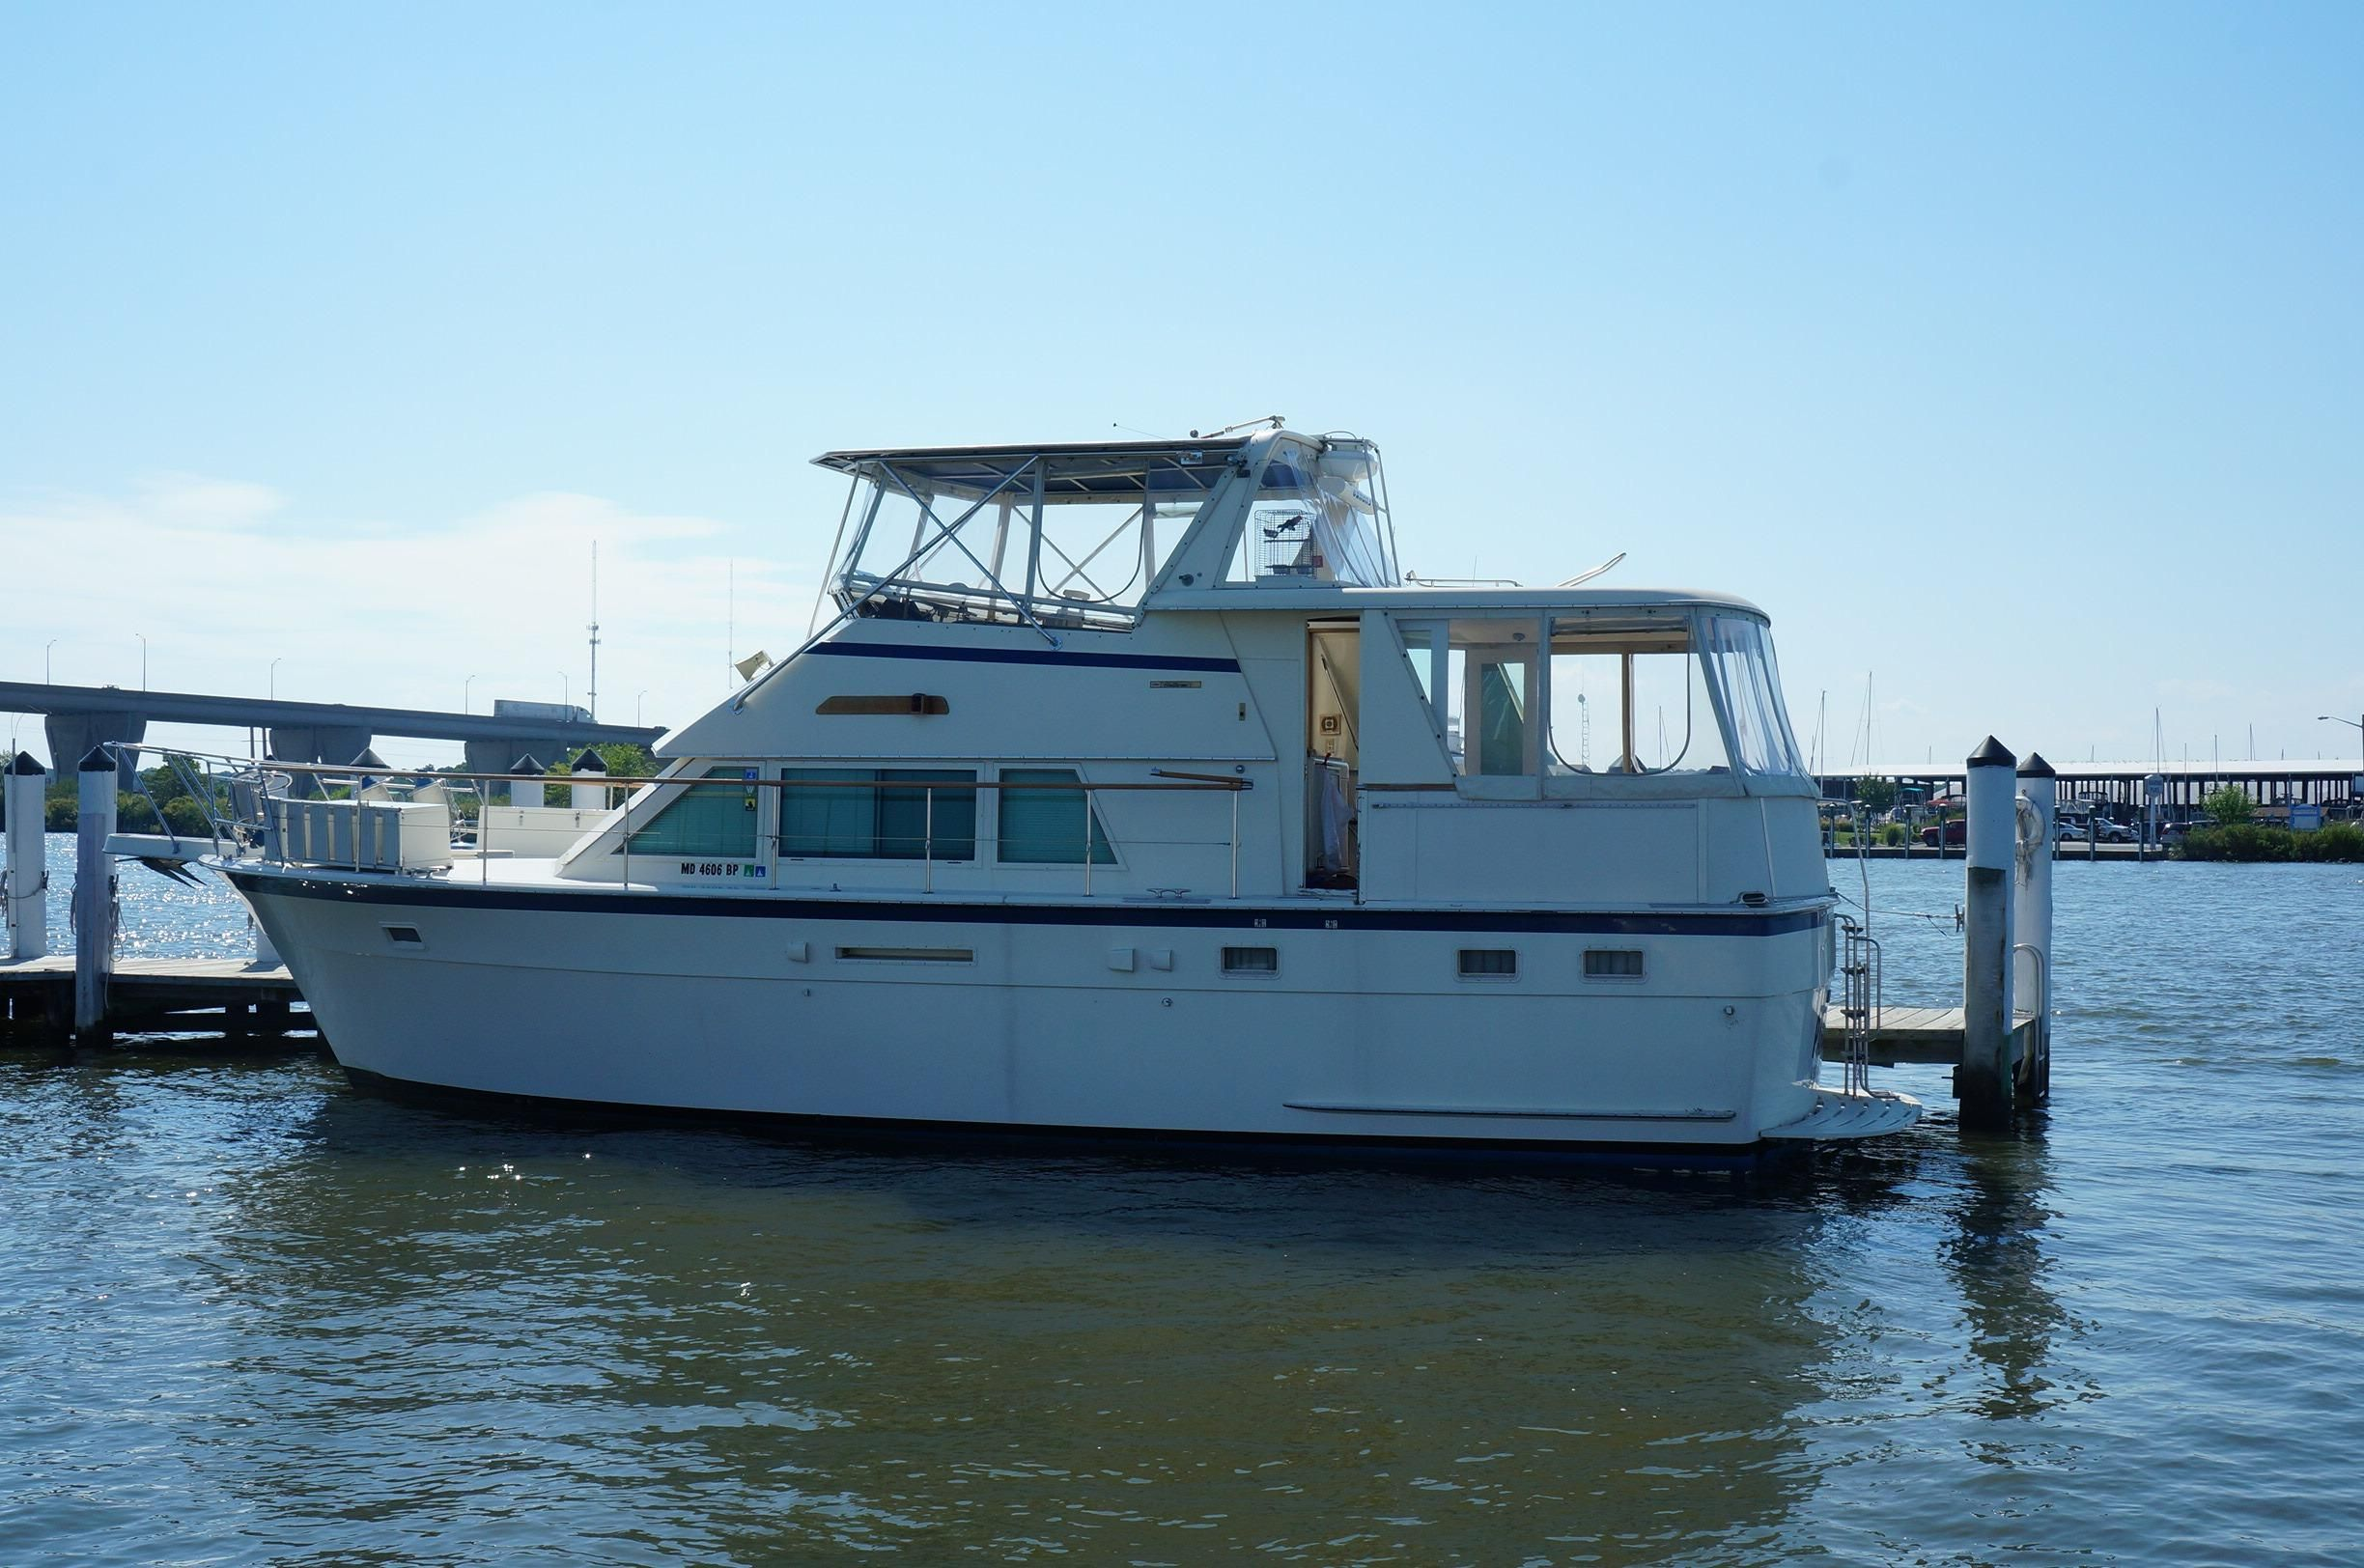 1986 hatteras motor yacht power new and used boats for sale for Hatteras motor yacht for sale